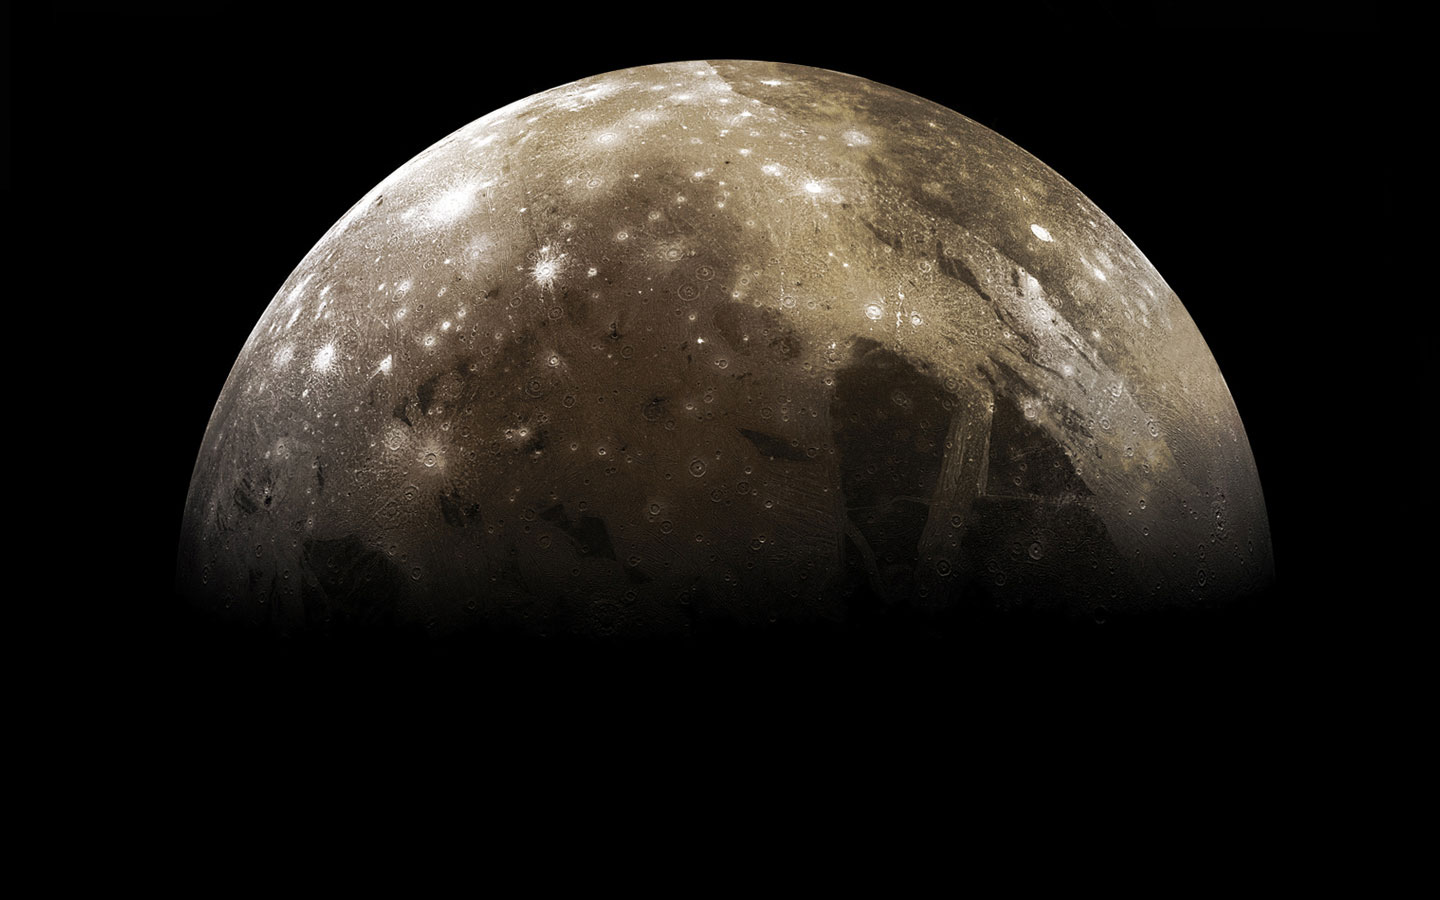 Ganymede Credit: Galileo Project, NASA